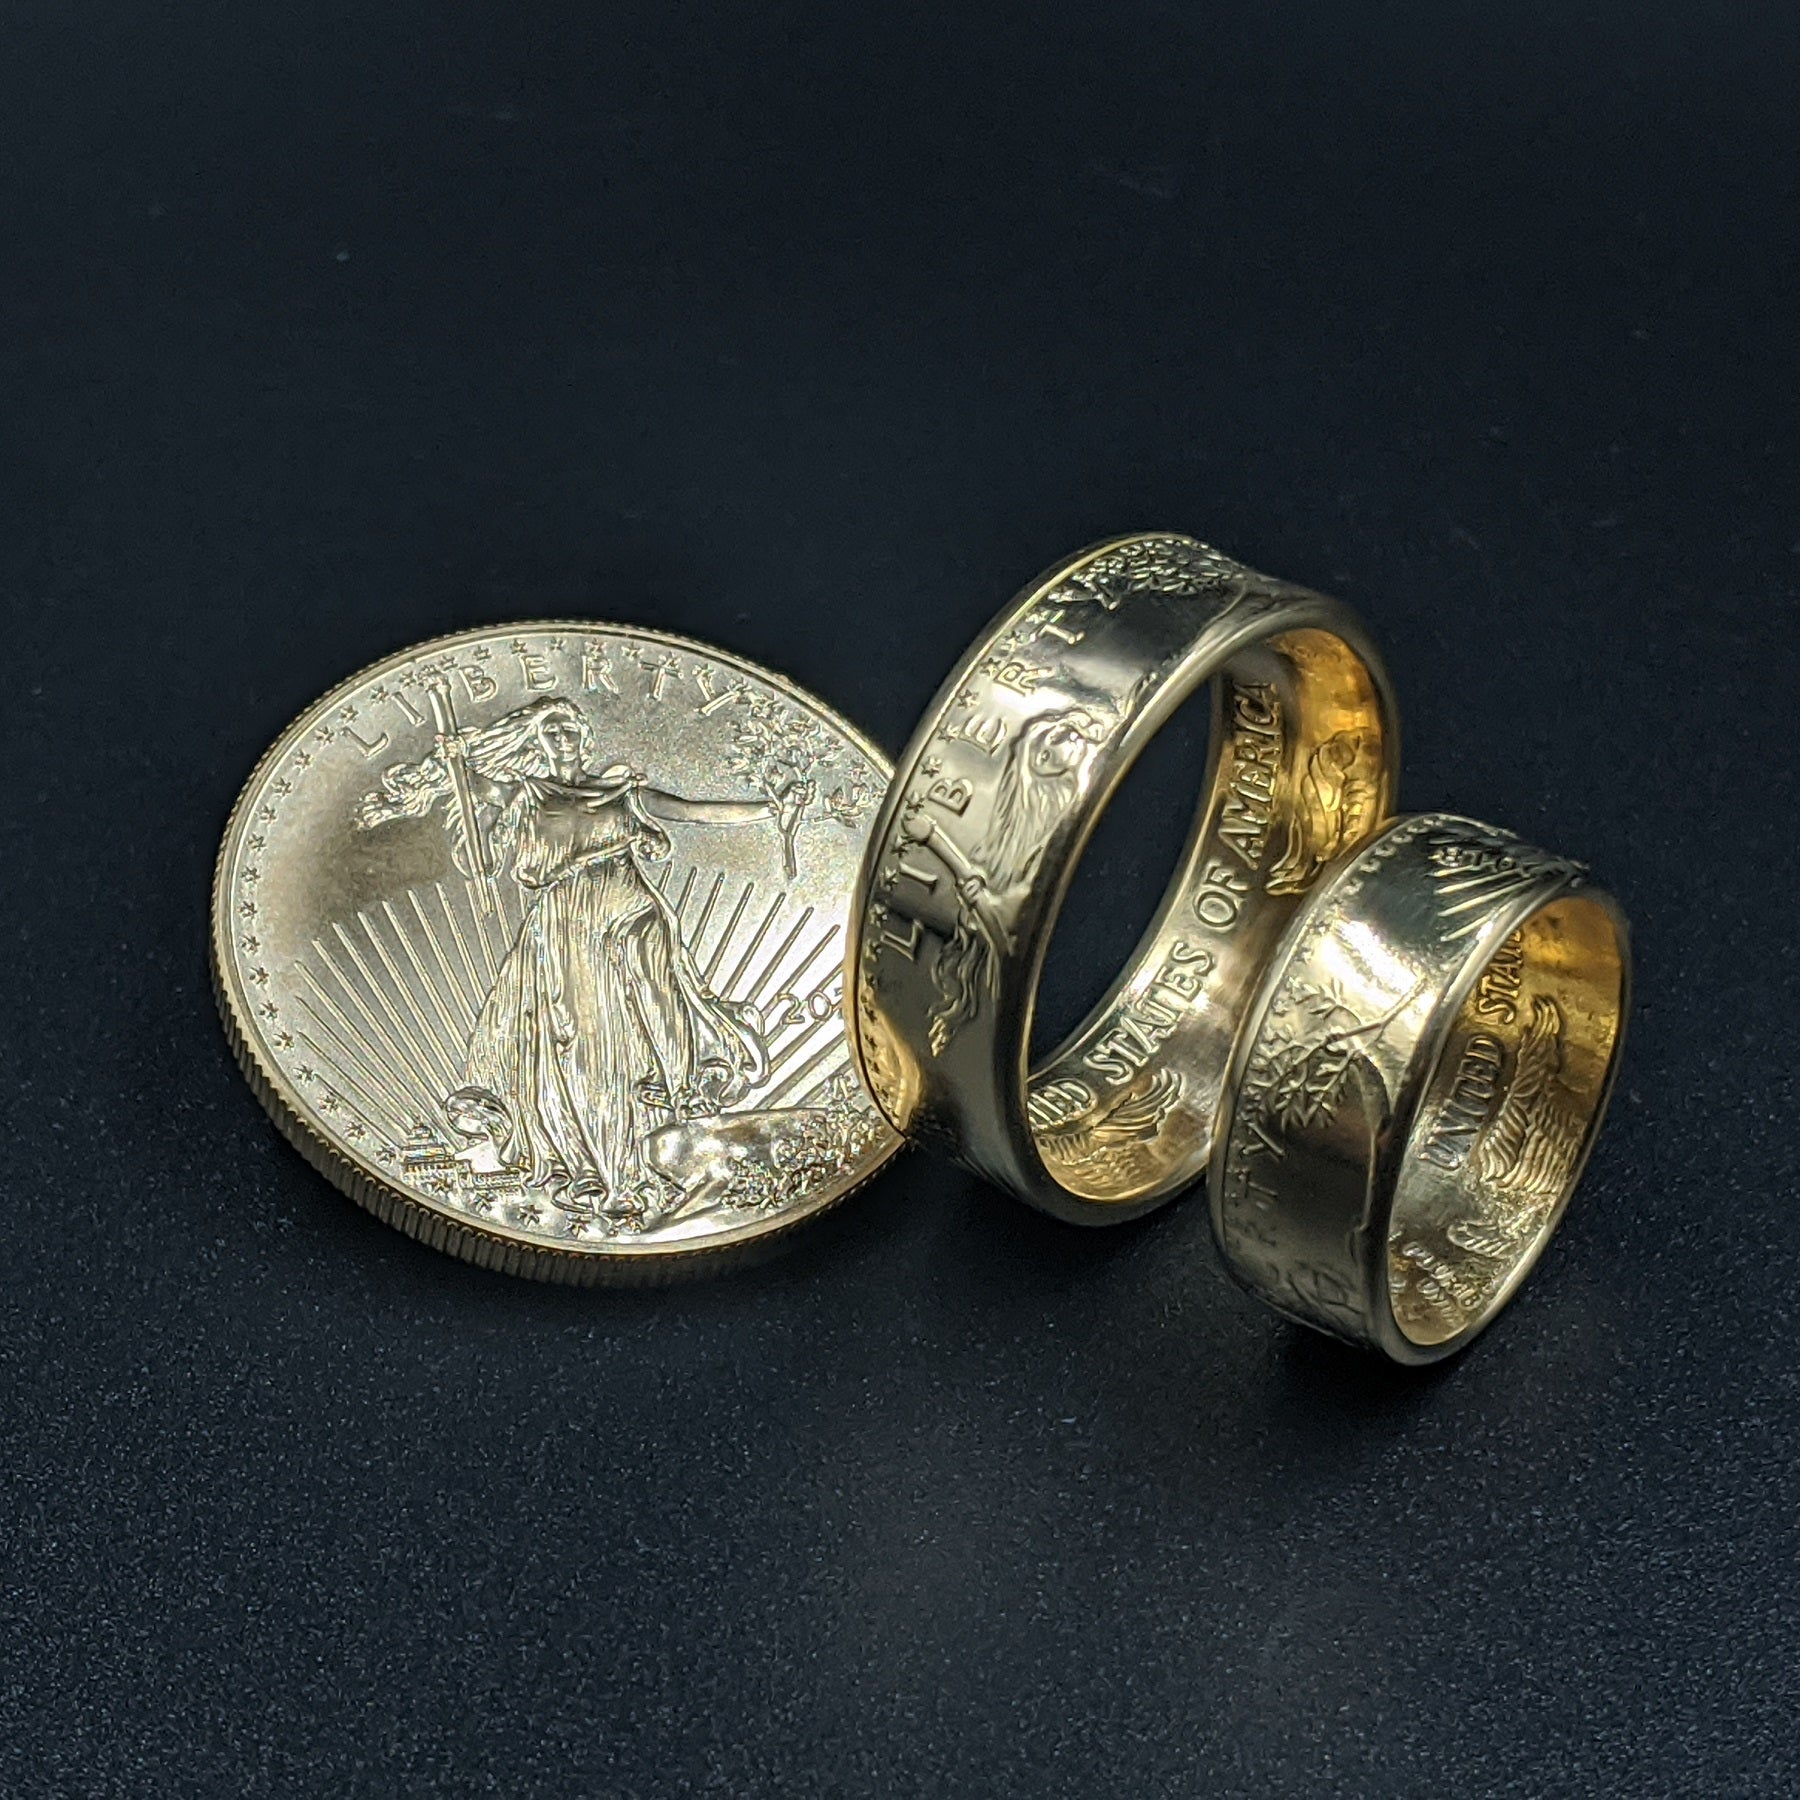 American Gold Eagle wedding band set with gold eagle coin